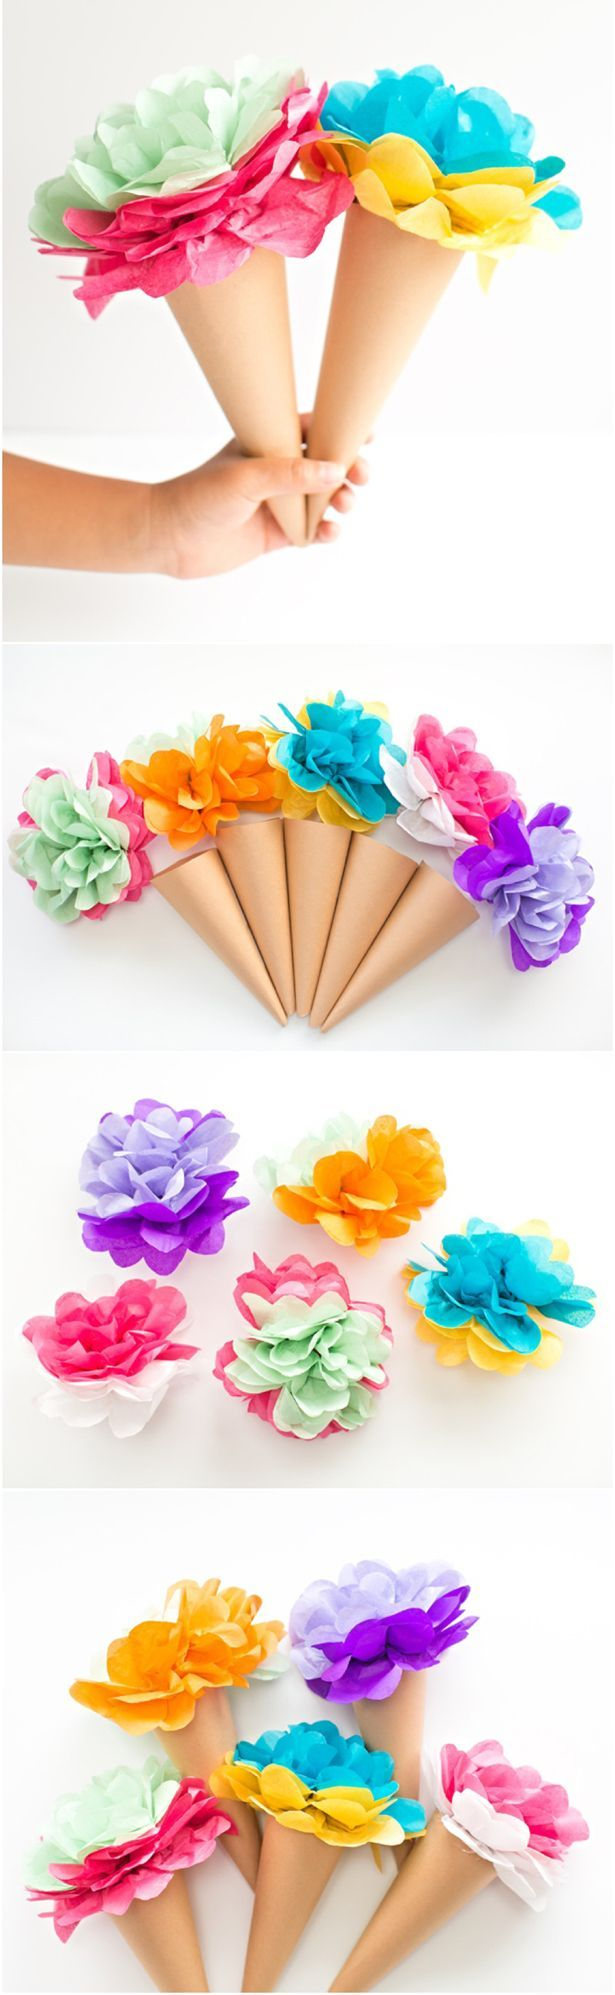 26 best images about crafts paper crafts on pinterest coffee diy tissue paper ice cream cone flowers adorable colorful paper craft for kid and a jeuxipadfo Images